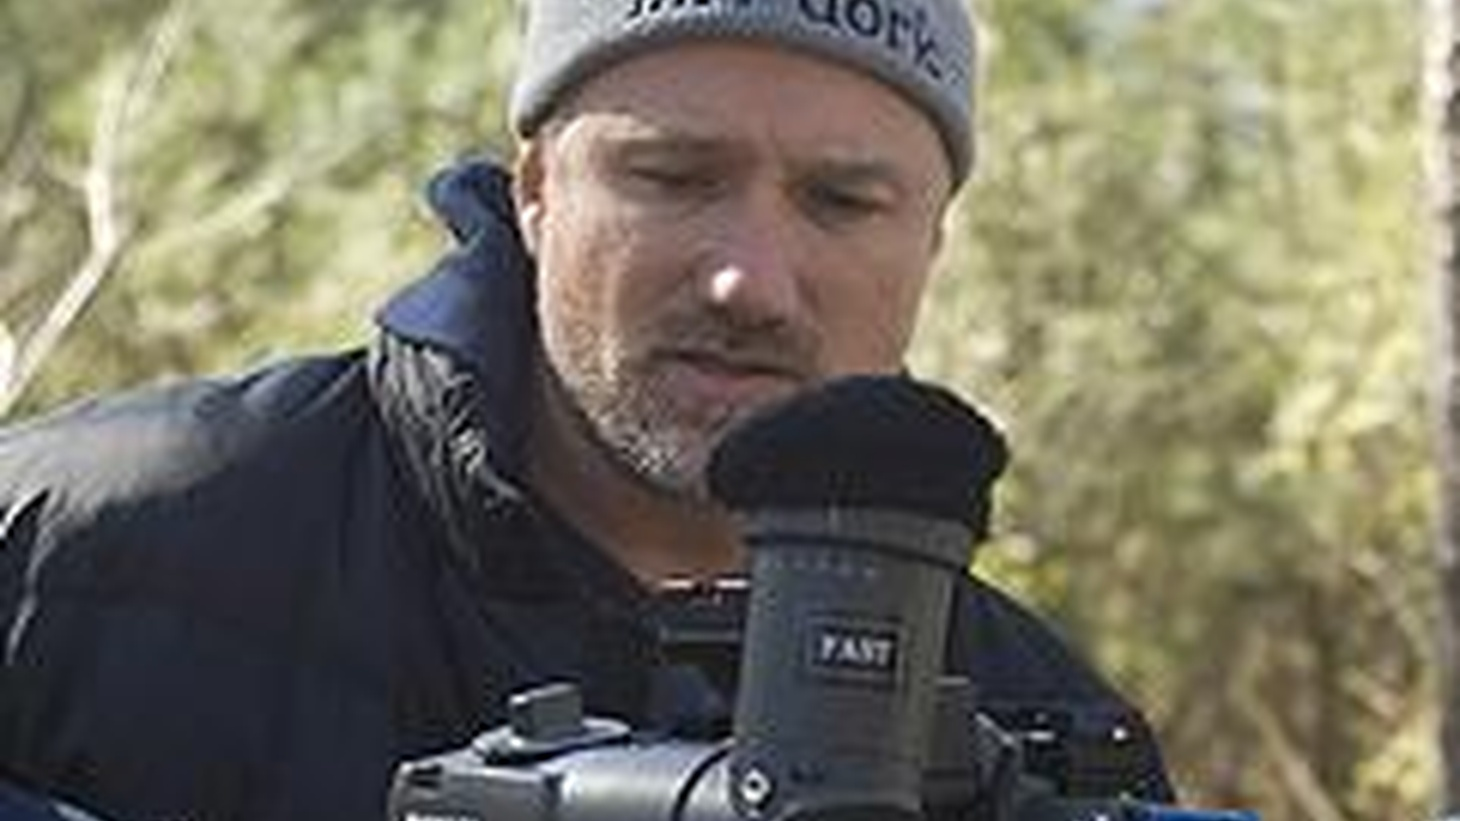 In just six films, director David Fincher (Seven, Panic Room, Fight Club)  has established themes and textures. So much so that his latest, The Curious Case of Benjamin Button, both conforms and contradicts that work. 